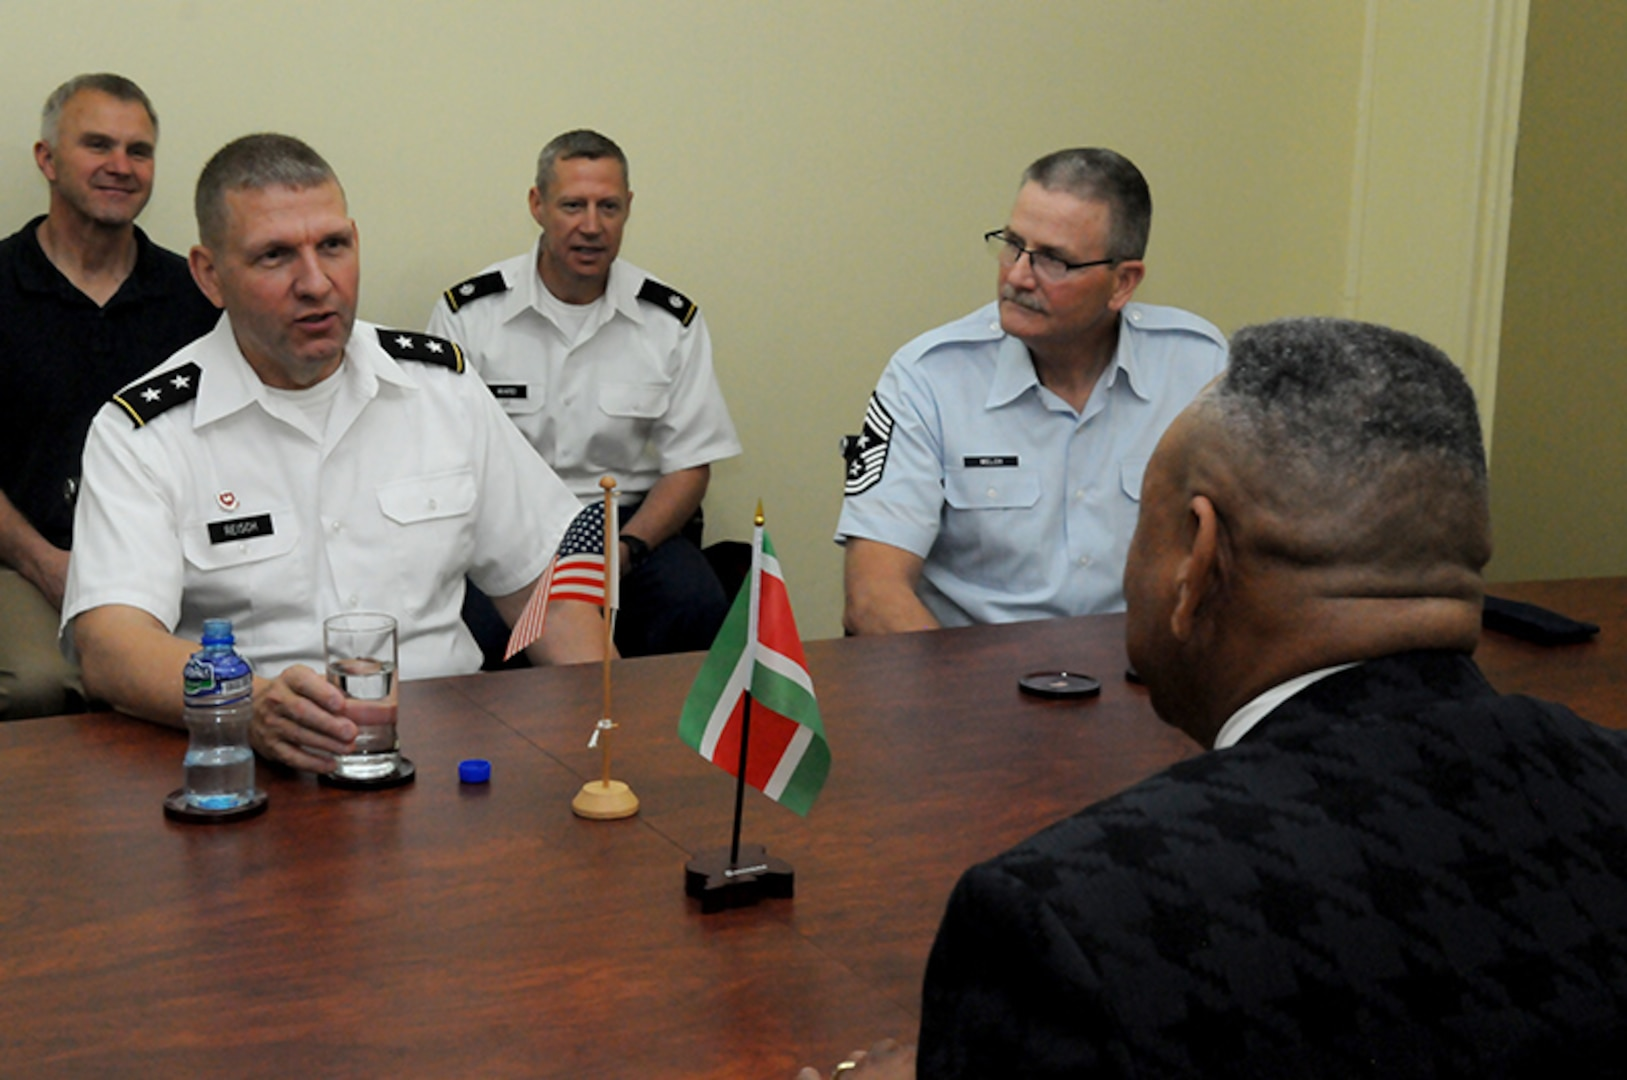 U.S. Army Maj. Gen. Tim Reisch, adjutant general for the South Dakota National Guard and State Command Chief Master Sgt. James Welch, SDNG senior enlisted leader, meet with Suriname's Minister of Defense Ronni Benschop, during a distinguished leaders visit to Paramaribo, Suriname, Nov. 25, 2015.